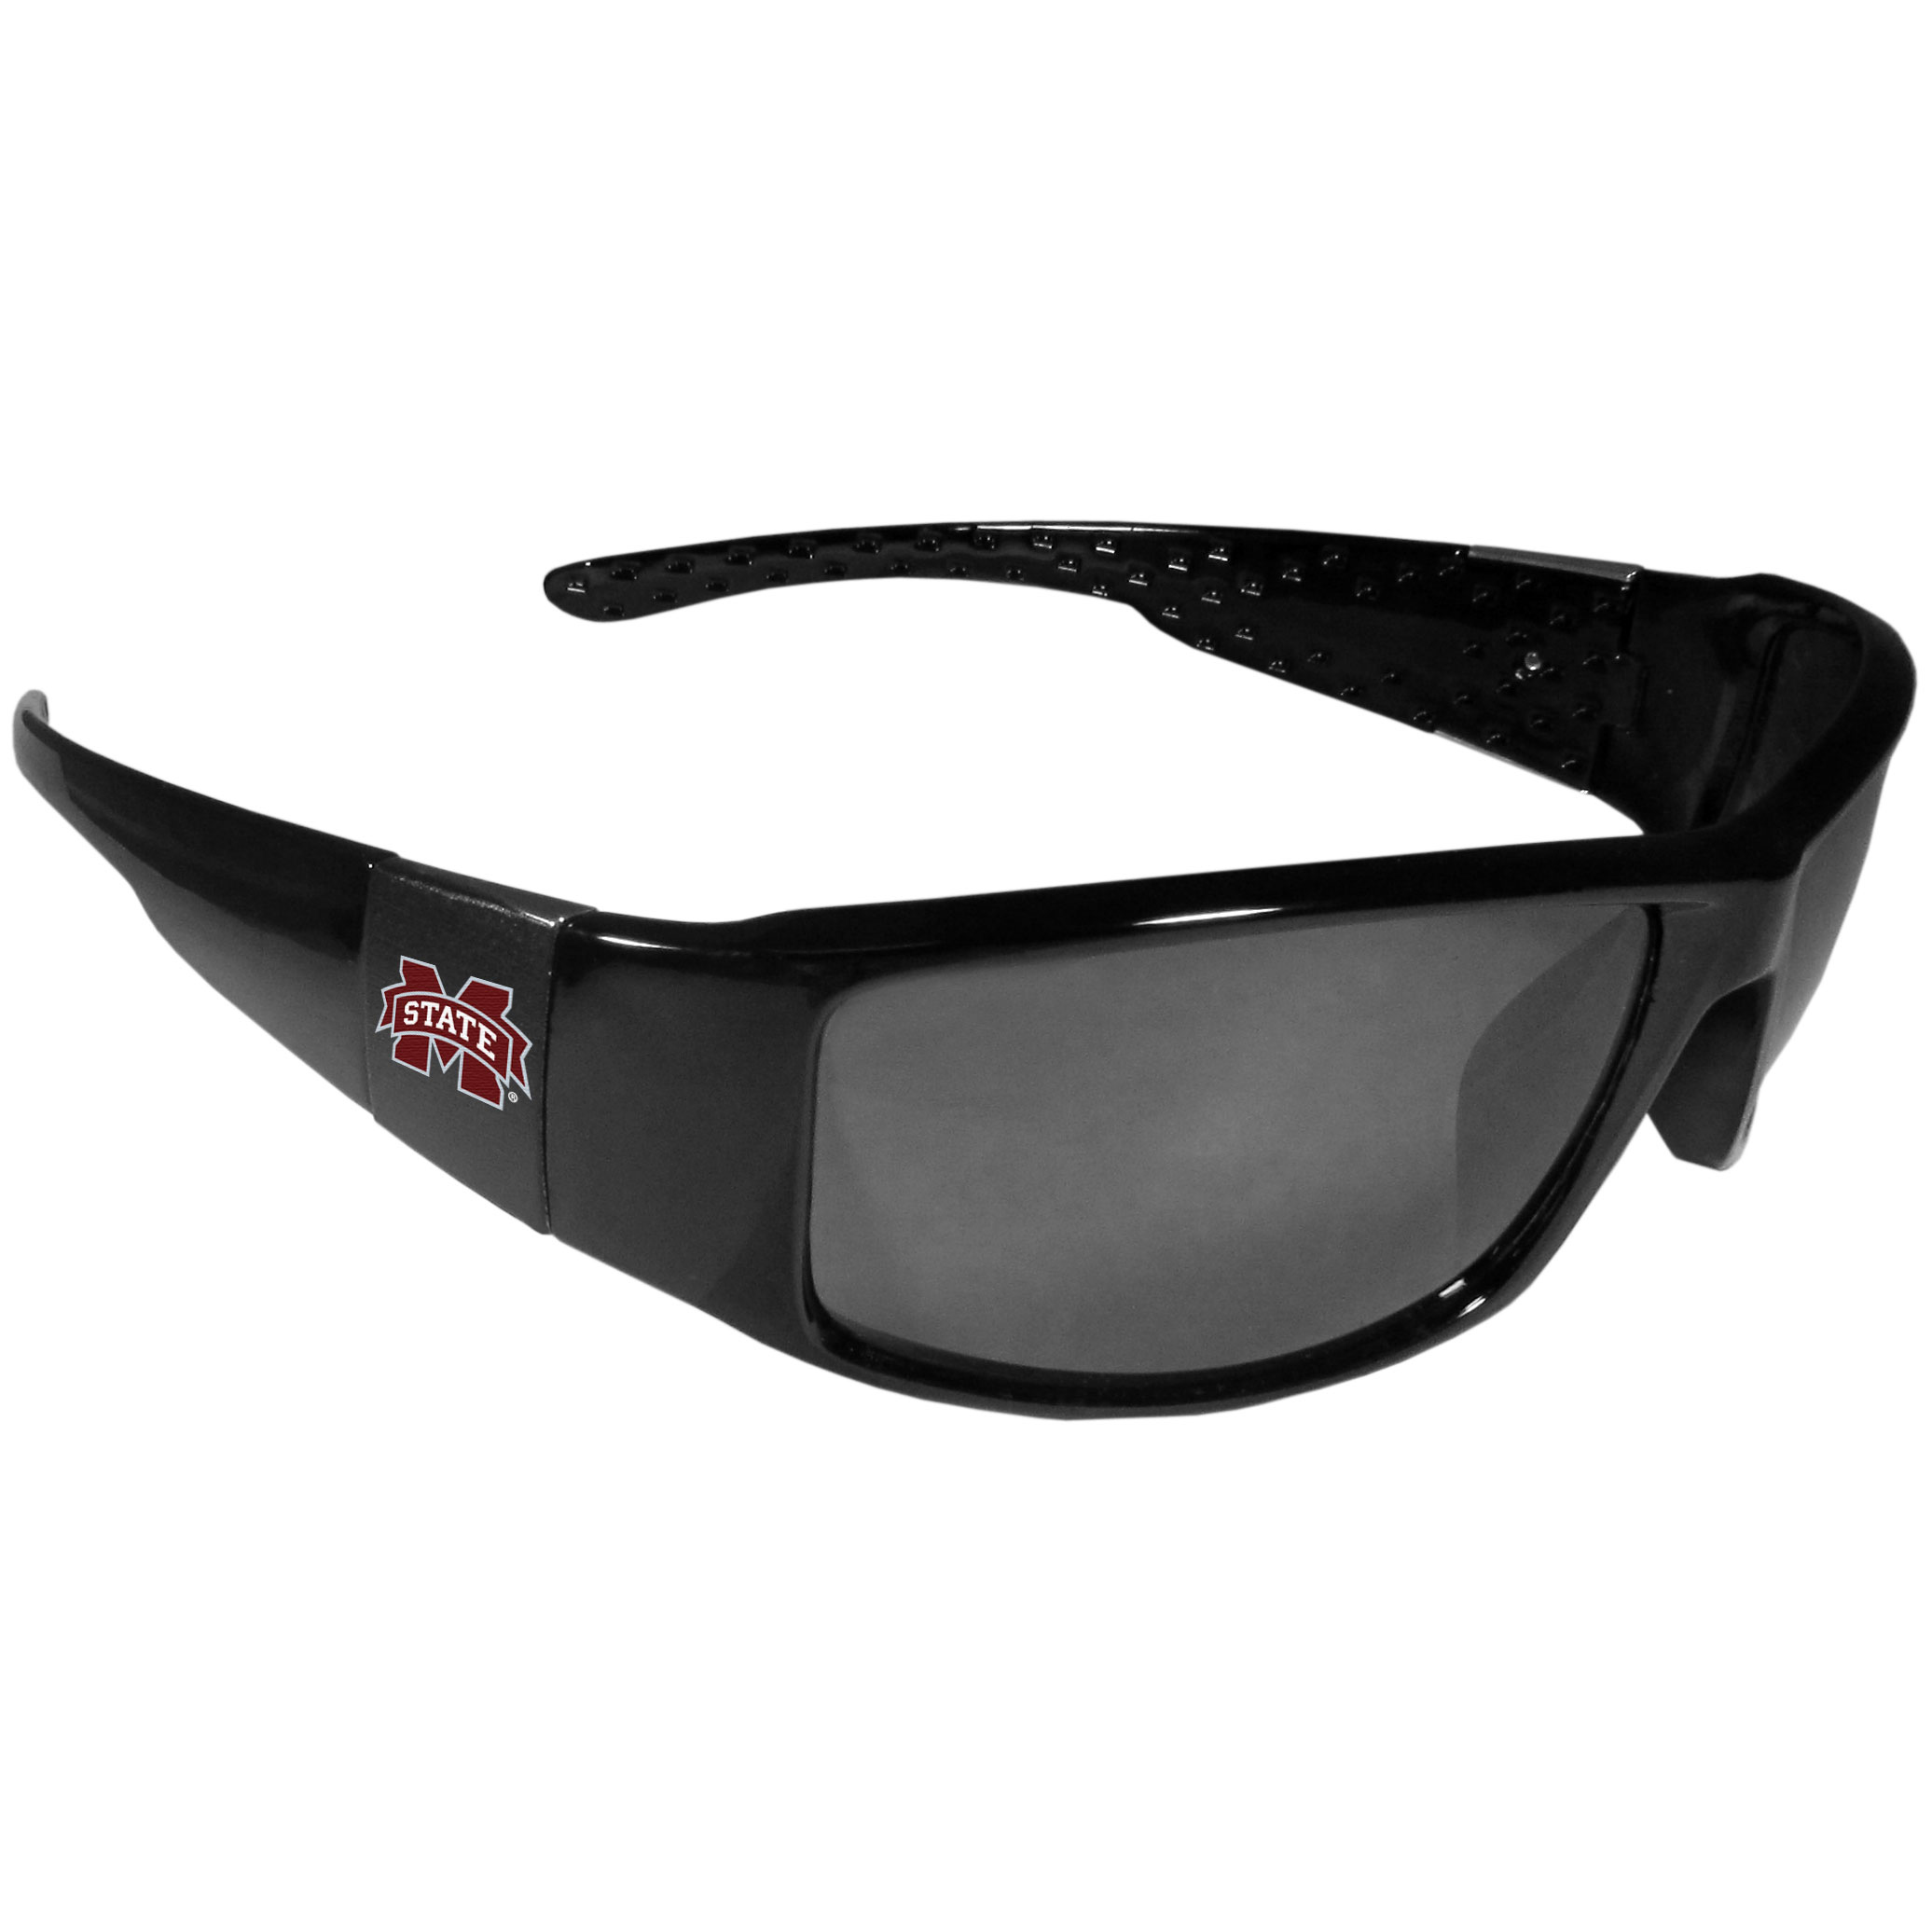 Mississippi St. Bulldogs Black Wrap Sunglasses - These designer inspired frames have a sleek look in all black with  Mississippi St. Bulldogs shields on each arm with a printed logo. The shades are perfect for any outdoor activity like; golfing, driving, hiking, fishing or cheering on the team at a tailgating event or at a home game day BBQ with a lens rating of 100% UVA/UVB for maximum UV protection. The high-quality frames are as durable as they are fashionable and with their classic look they are the perfect fan accessory that can be worn everyday for every occasion.